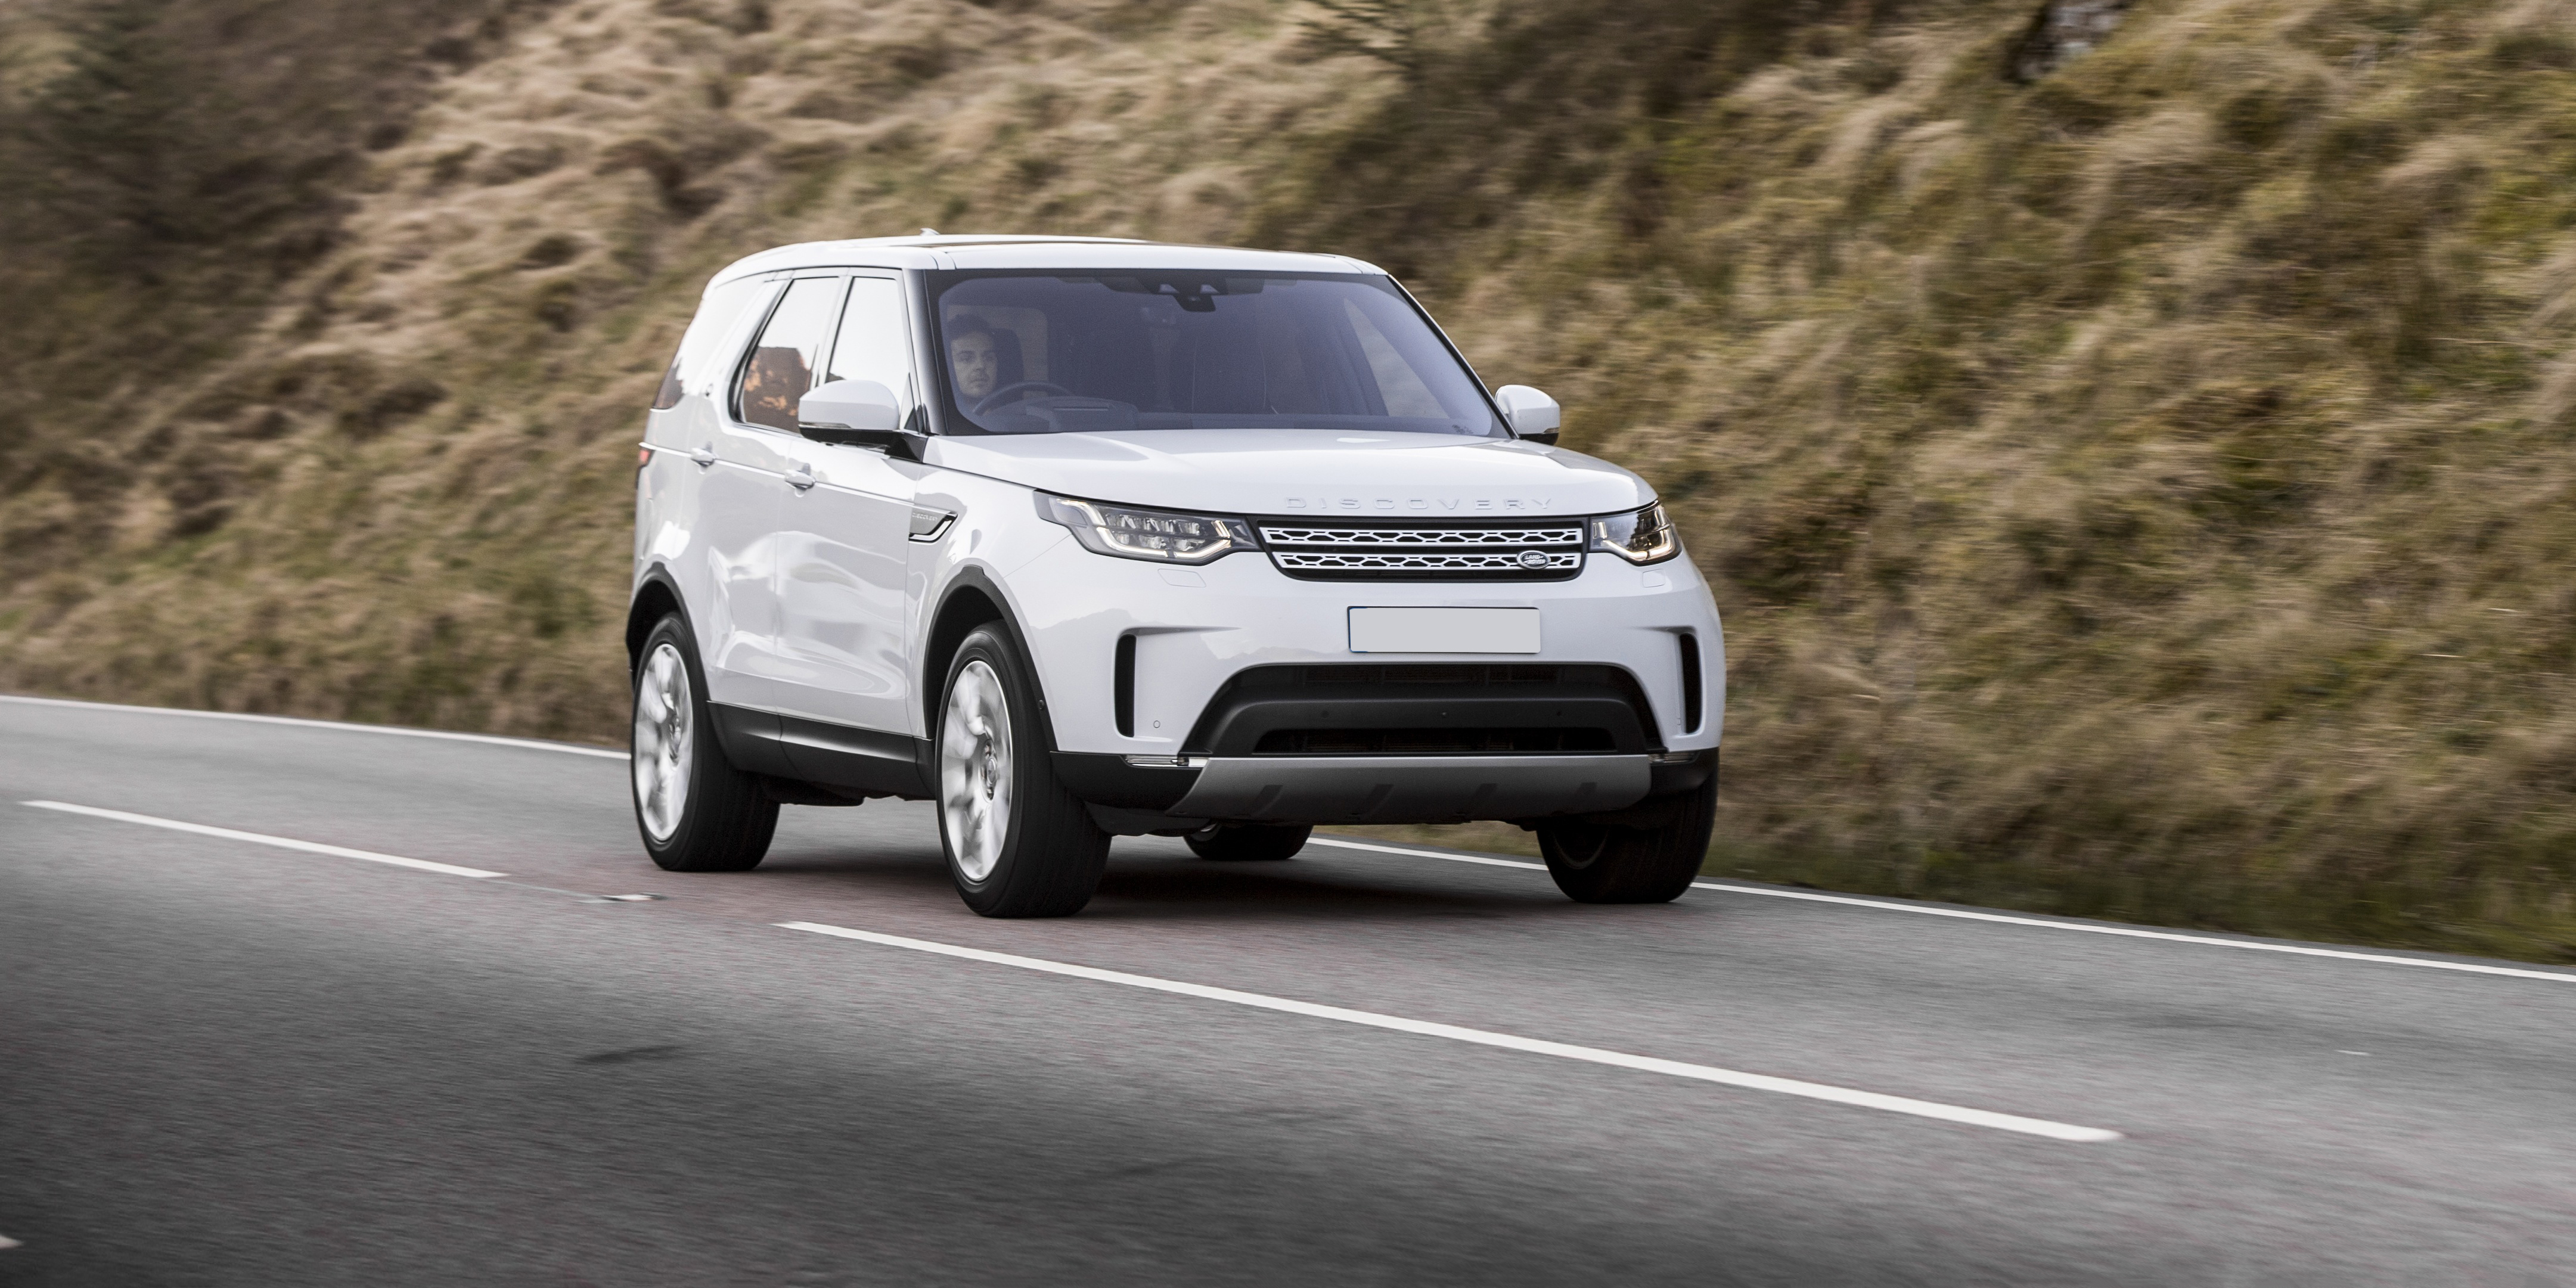 New Land Rover Discovery Review Carwow